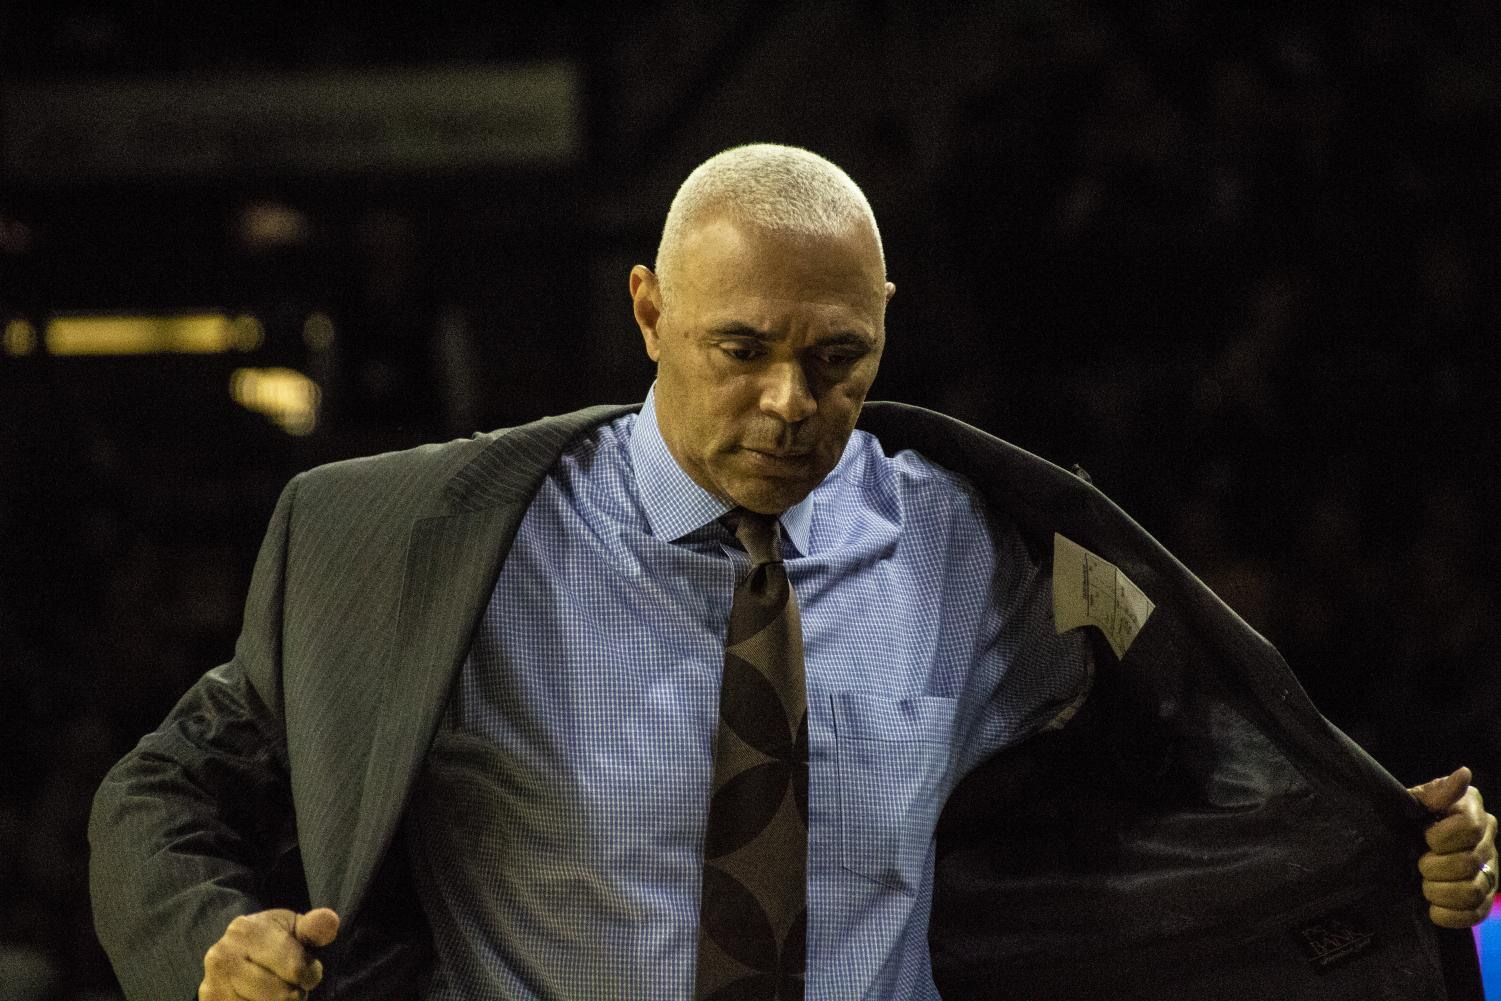 Head coach Dave Leitao and the DePaul Blue Demons have struggled to close out games this season. Richard Bodee I The DePaulia.